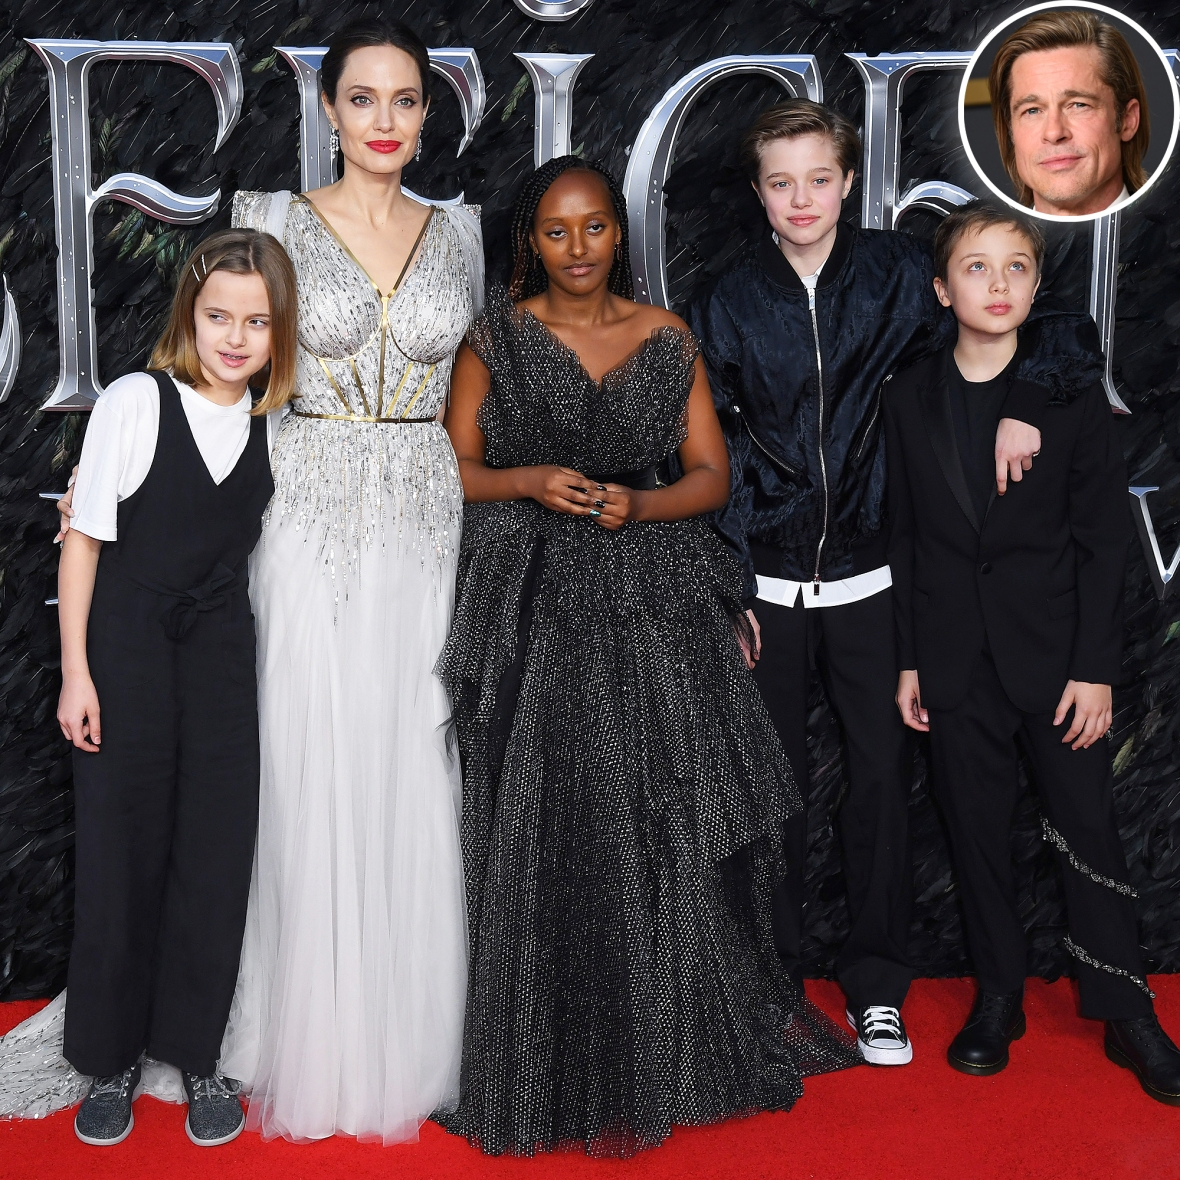 Angelina Jolie Reveals She Has Been Focusing on Healing Our Family After Moving Closer to Ex Brad Pitt